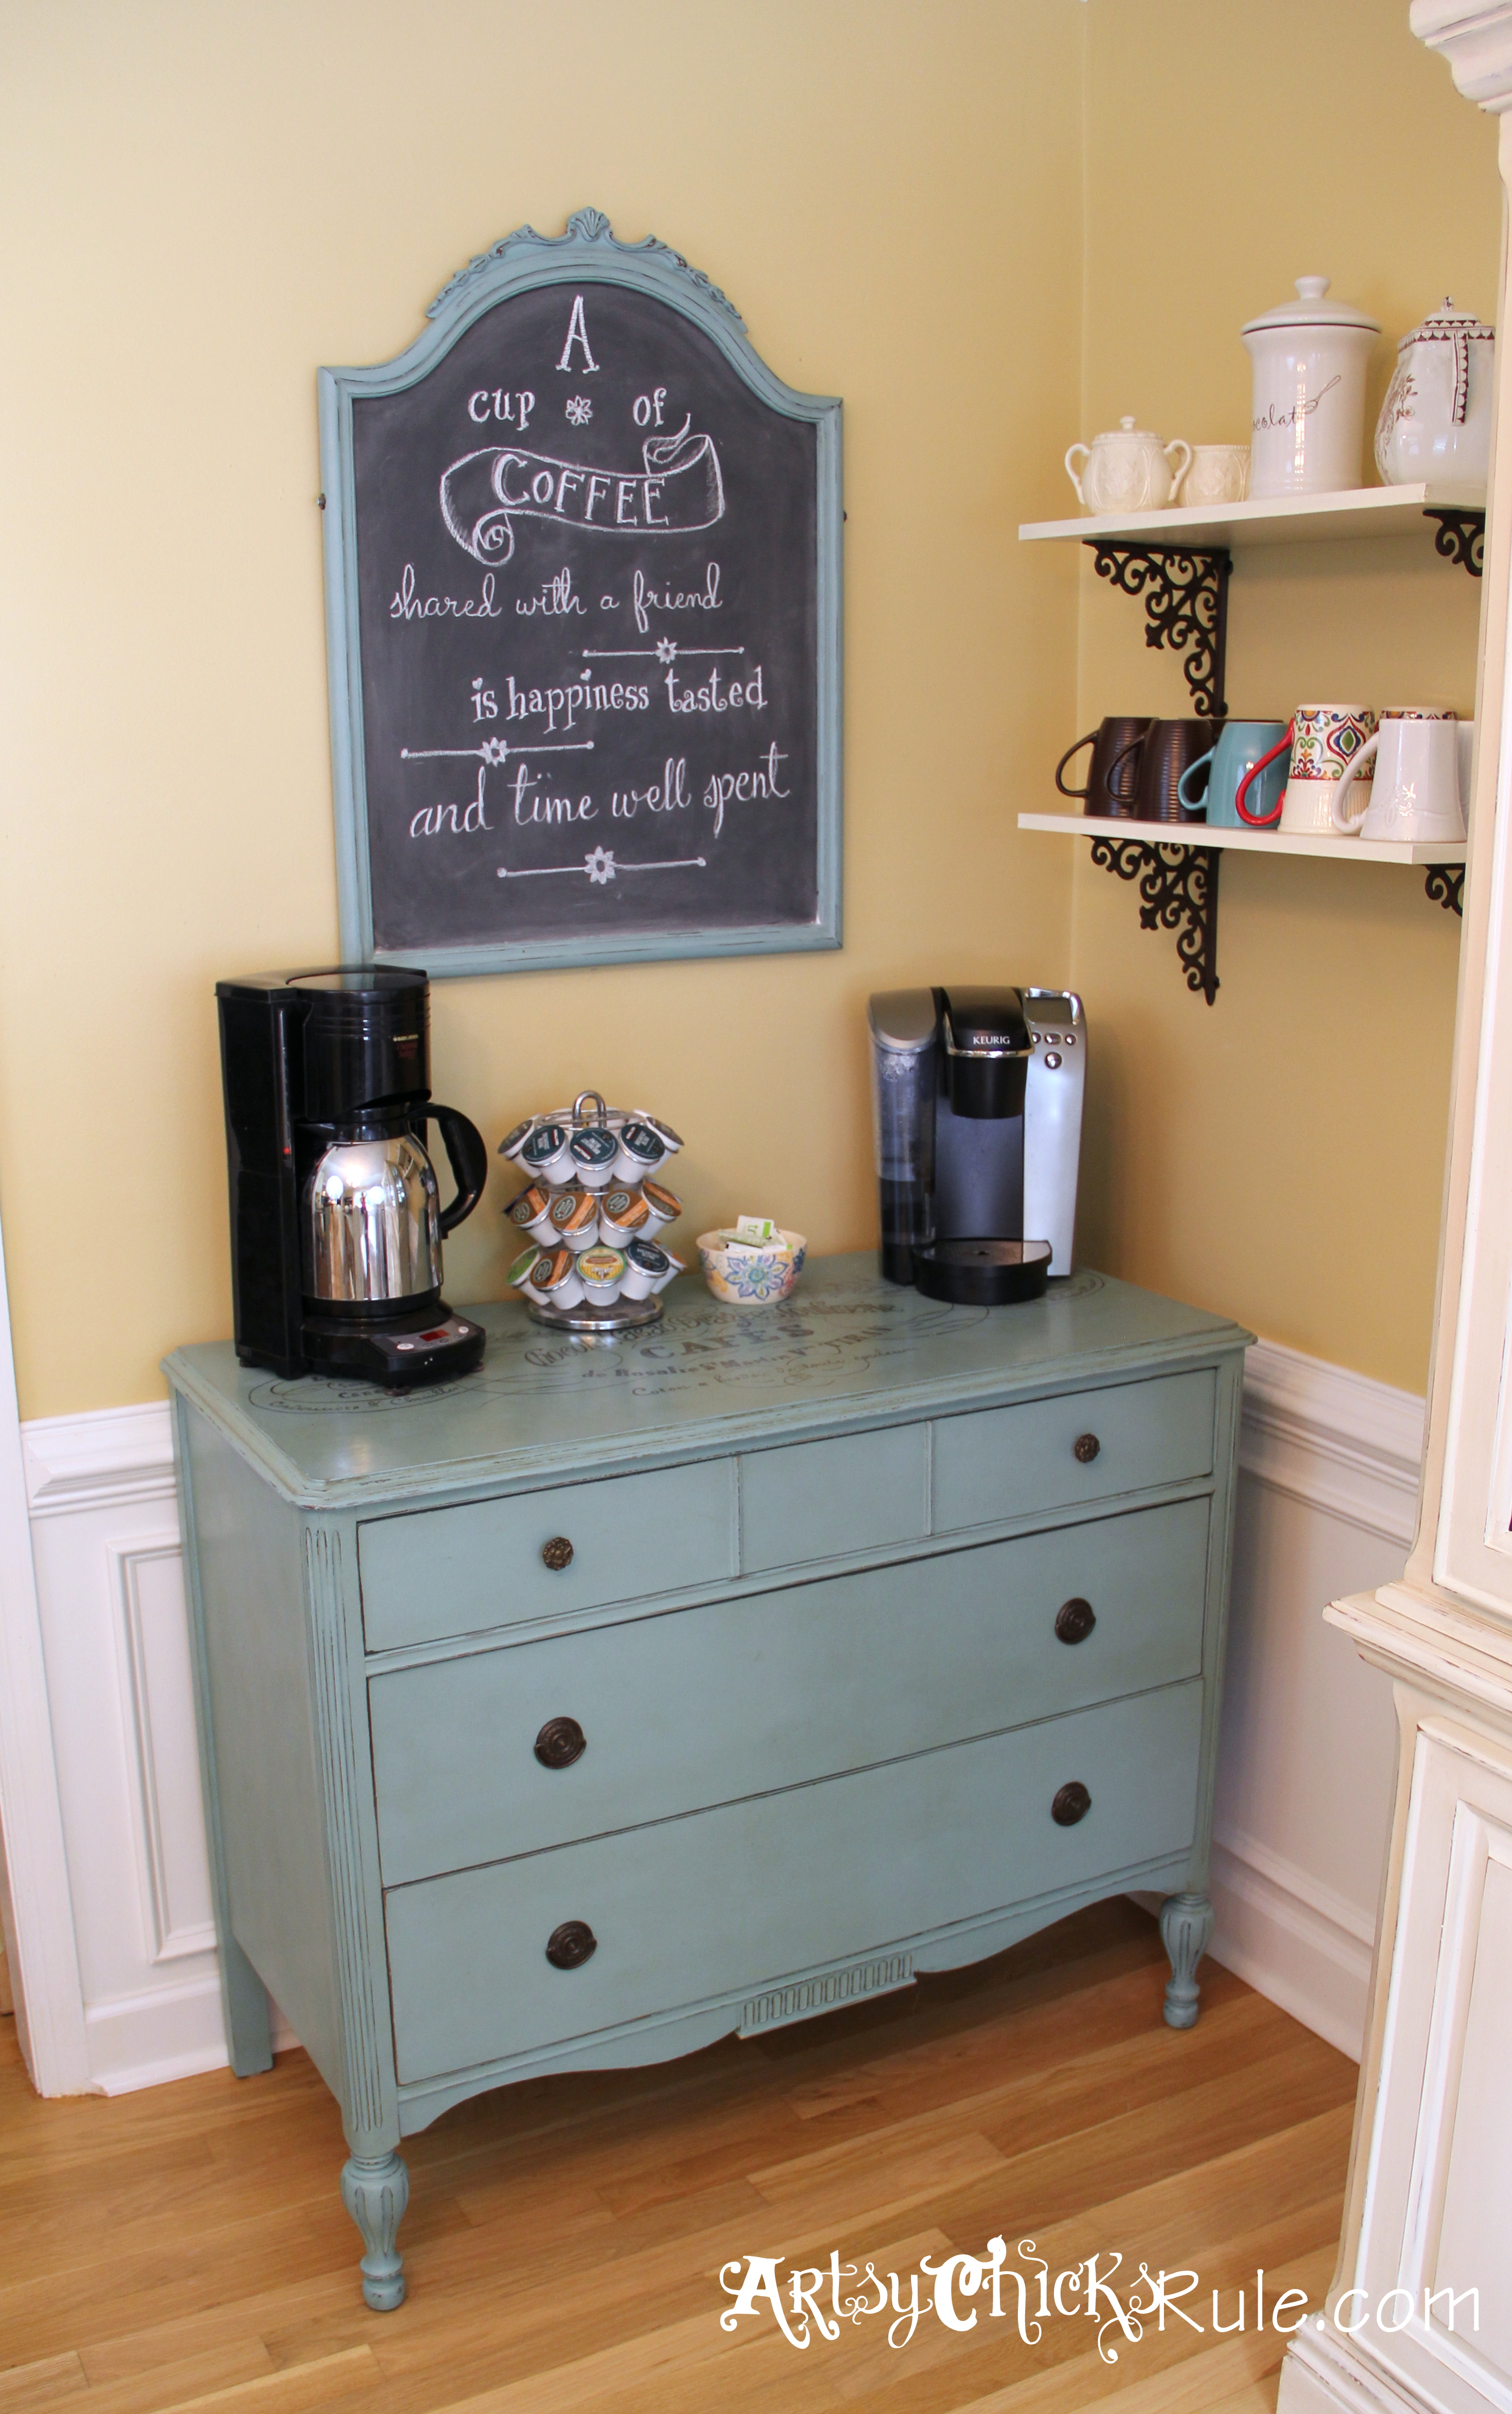 coffee bar in kitchen cost of renovating a quotcoffee quot server w shelves it moved artsy chicks rule